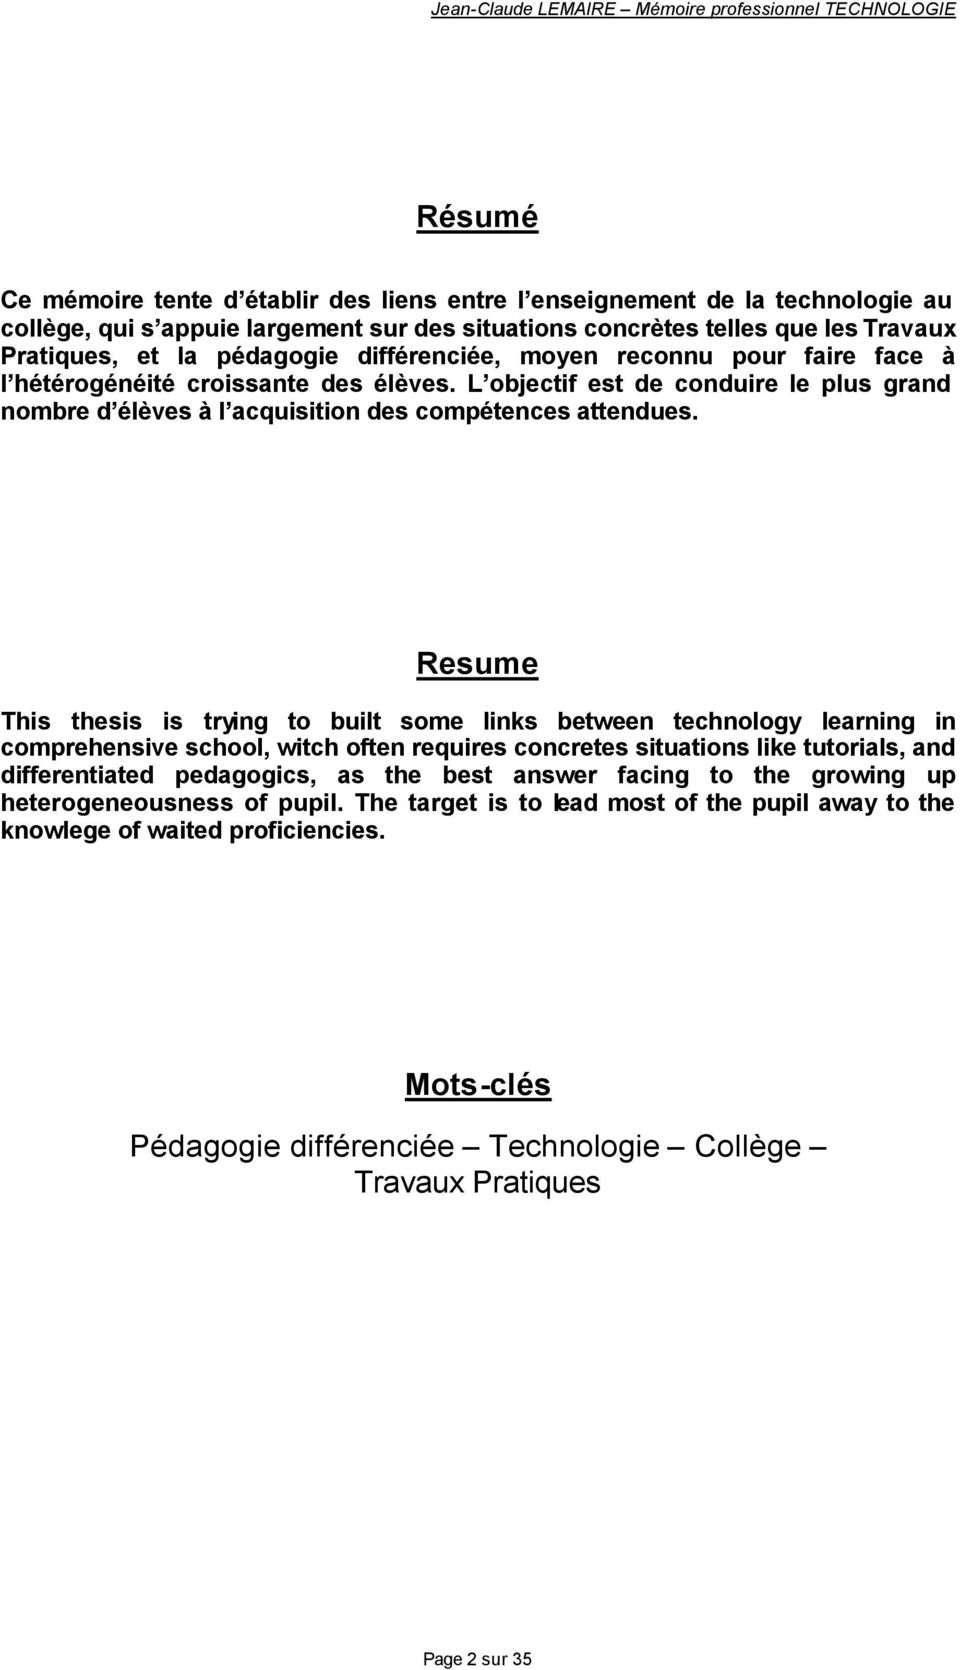 Resume This thesis is trying to built some links between technology learning in comprehensive school, witch often requires concretes situations like tutorials, and differentiated pedagogics, as the